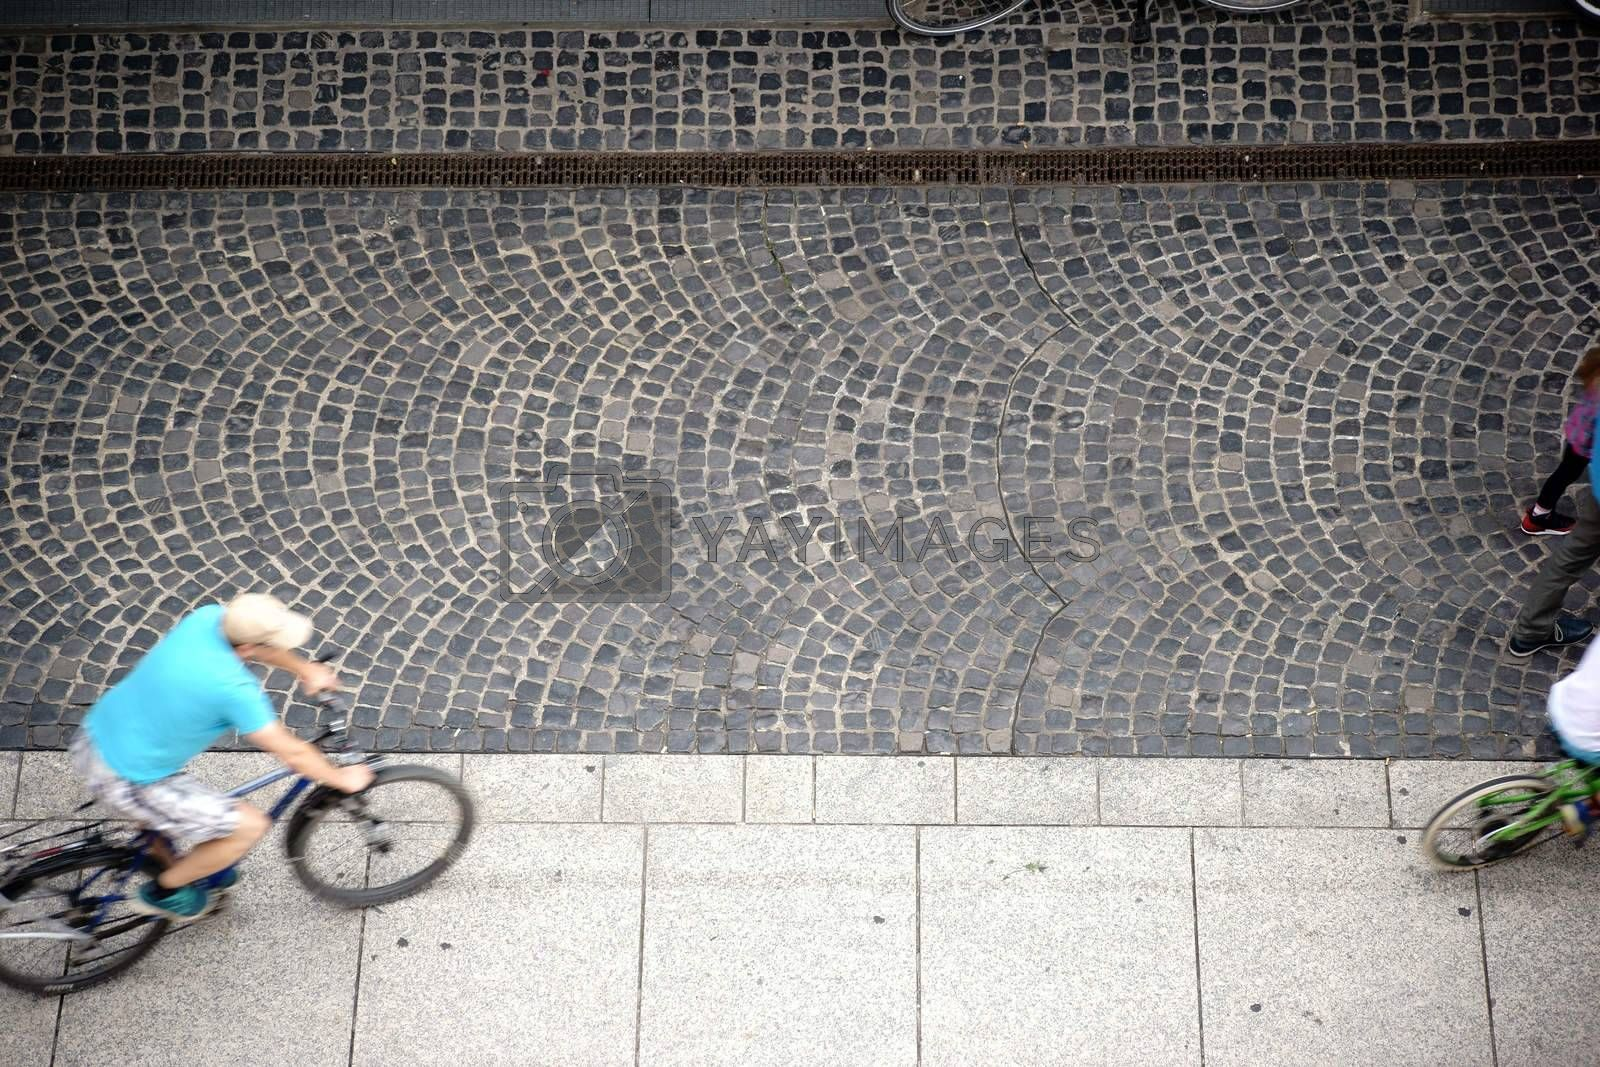 The Aerial view of a sidewalk with cobblestones and cyclists.